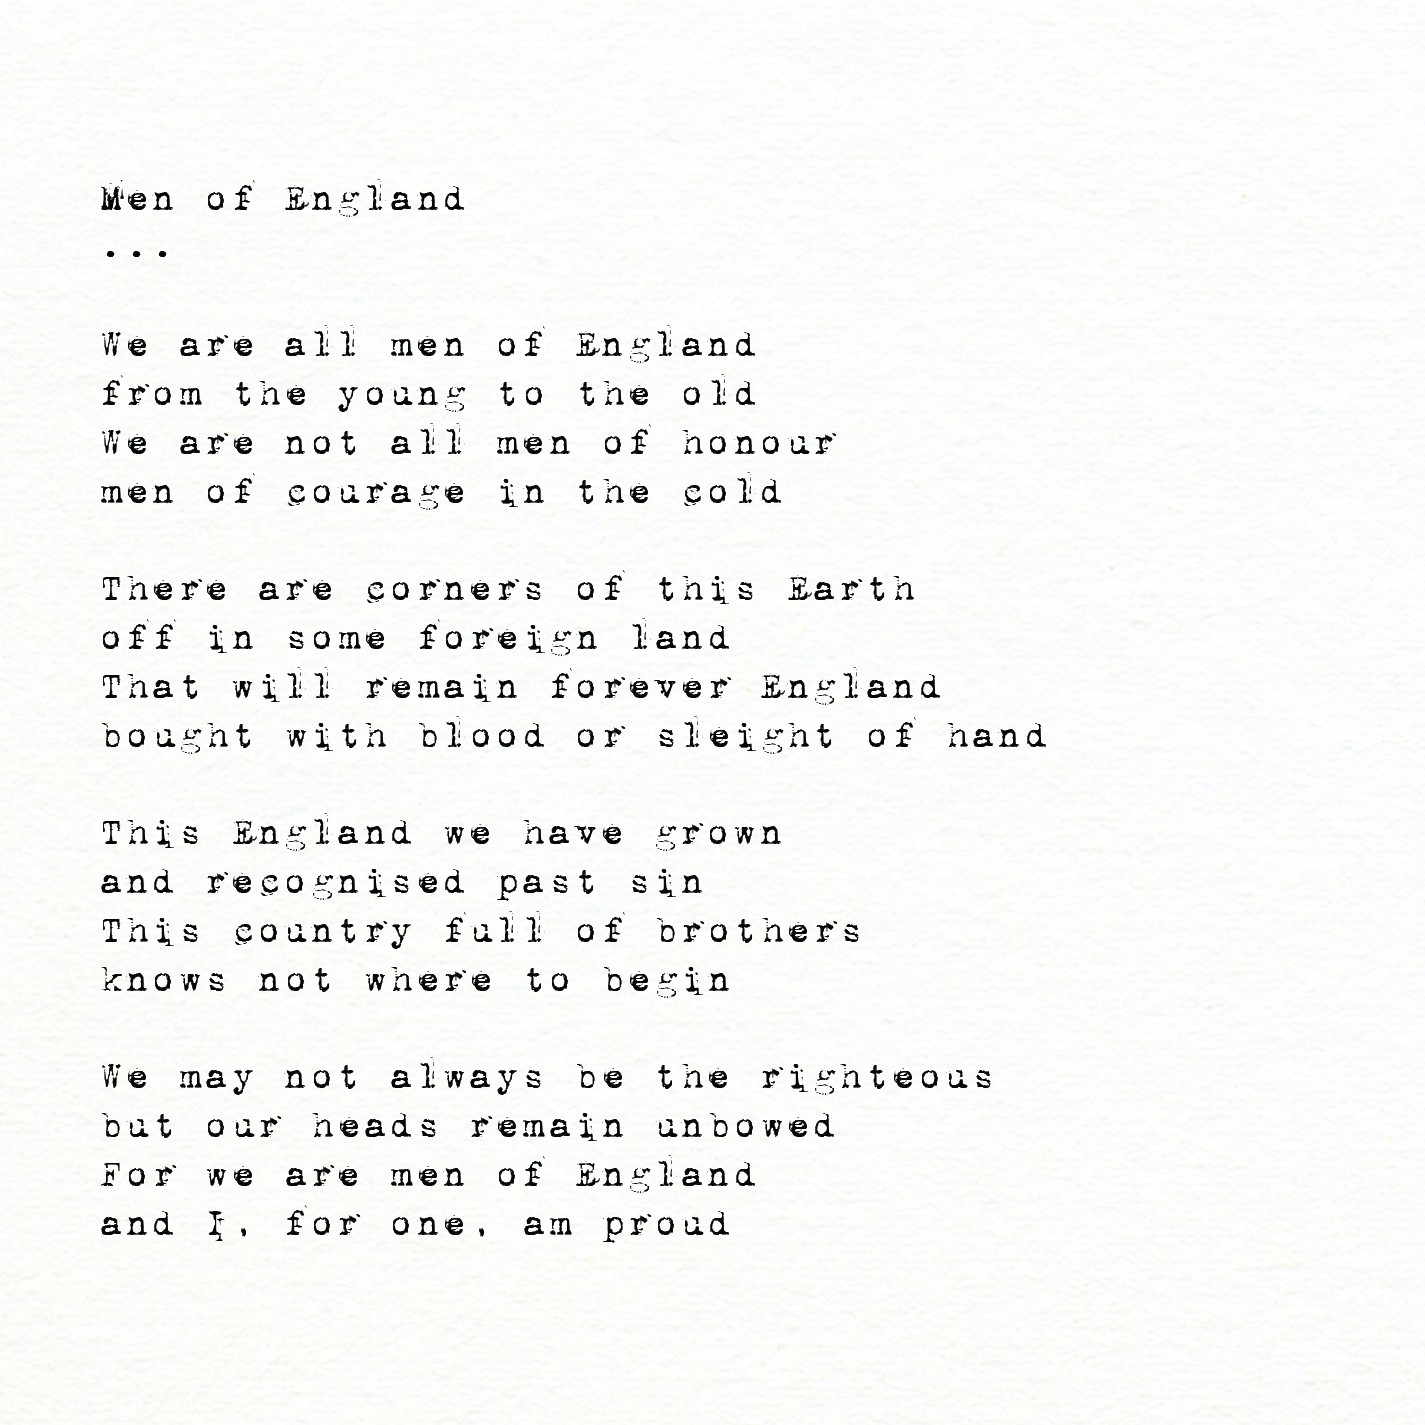 Men of England - Another English Poet - Medium